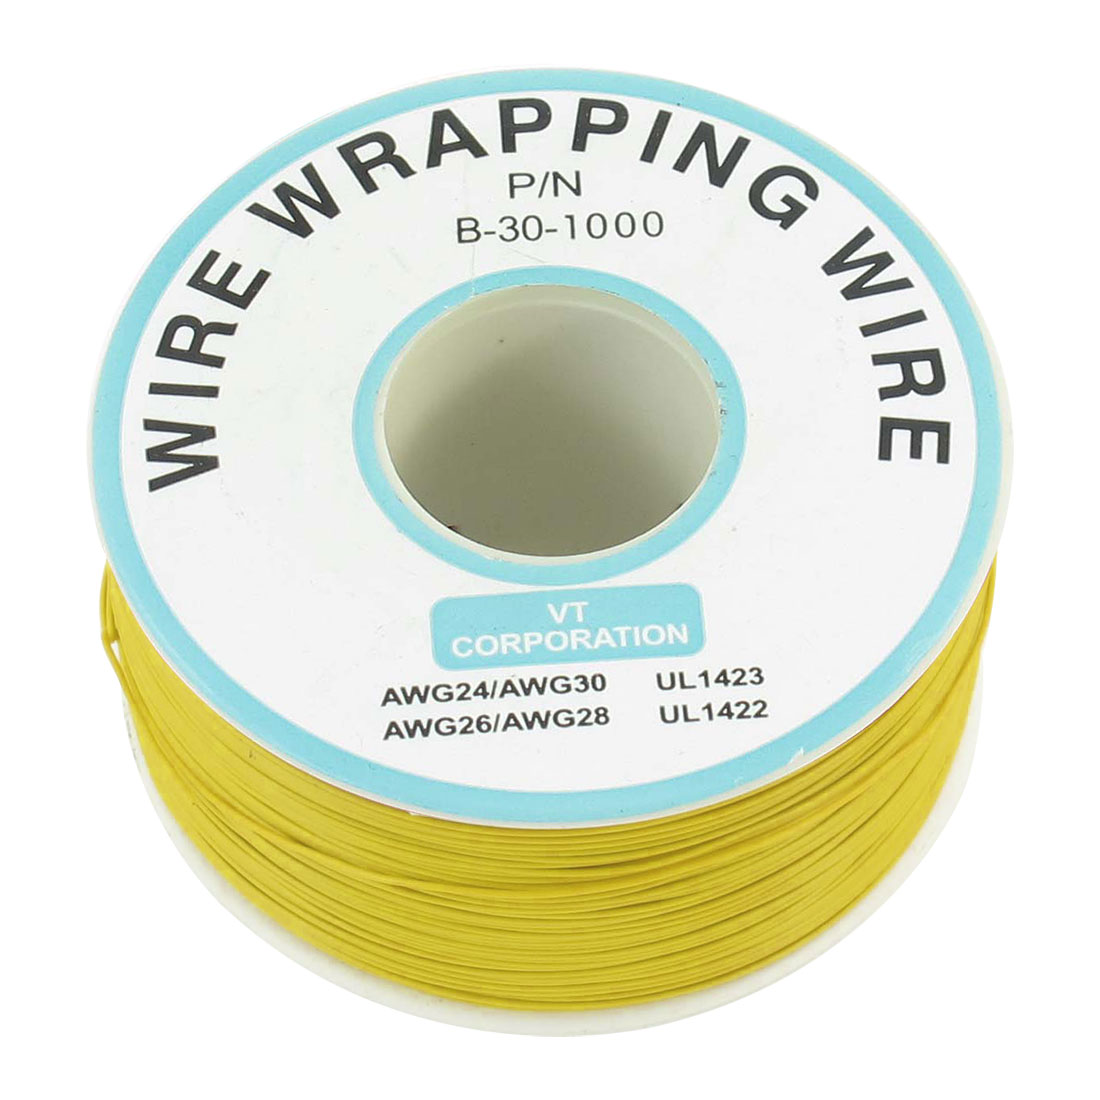 PCB Solder Yellow Flexible 0.25mm Core Dia 30AWG Wire Wrapping Wrap 820Ft